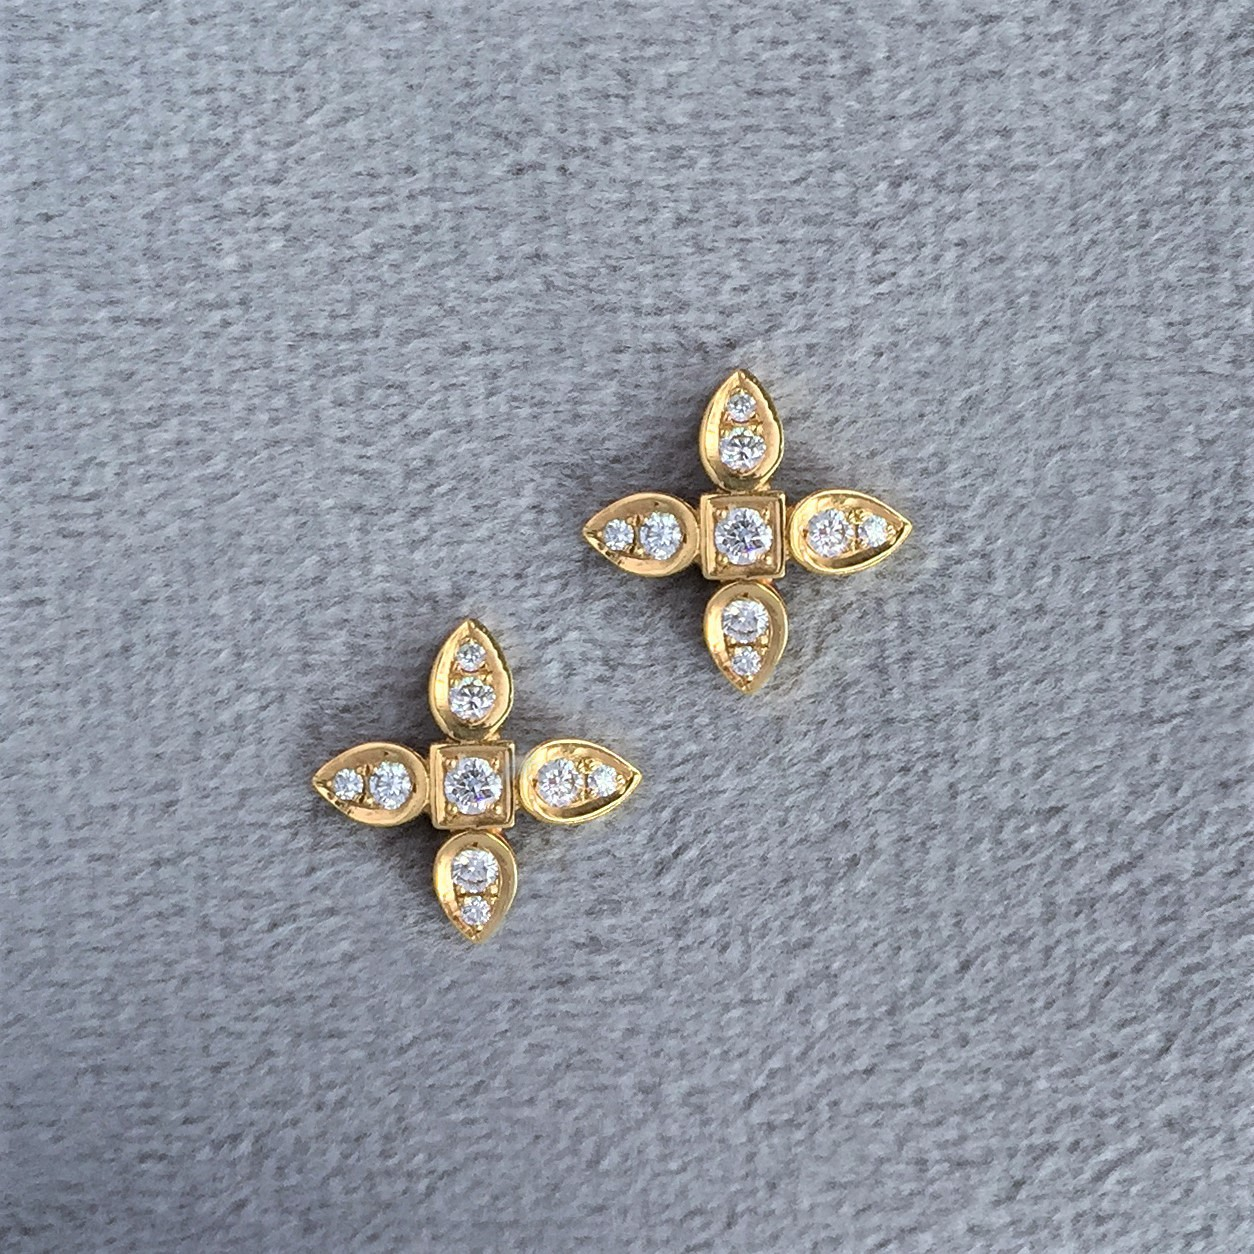 Diamond sevilla motif earrings in yellow gold